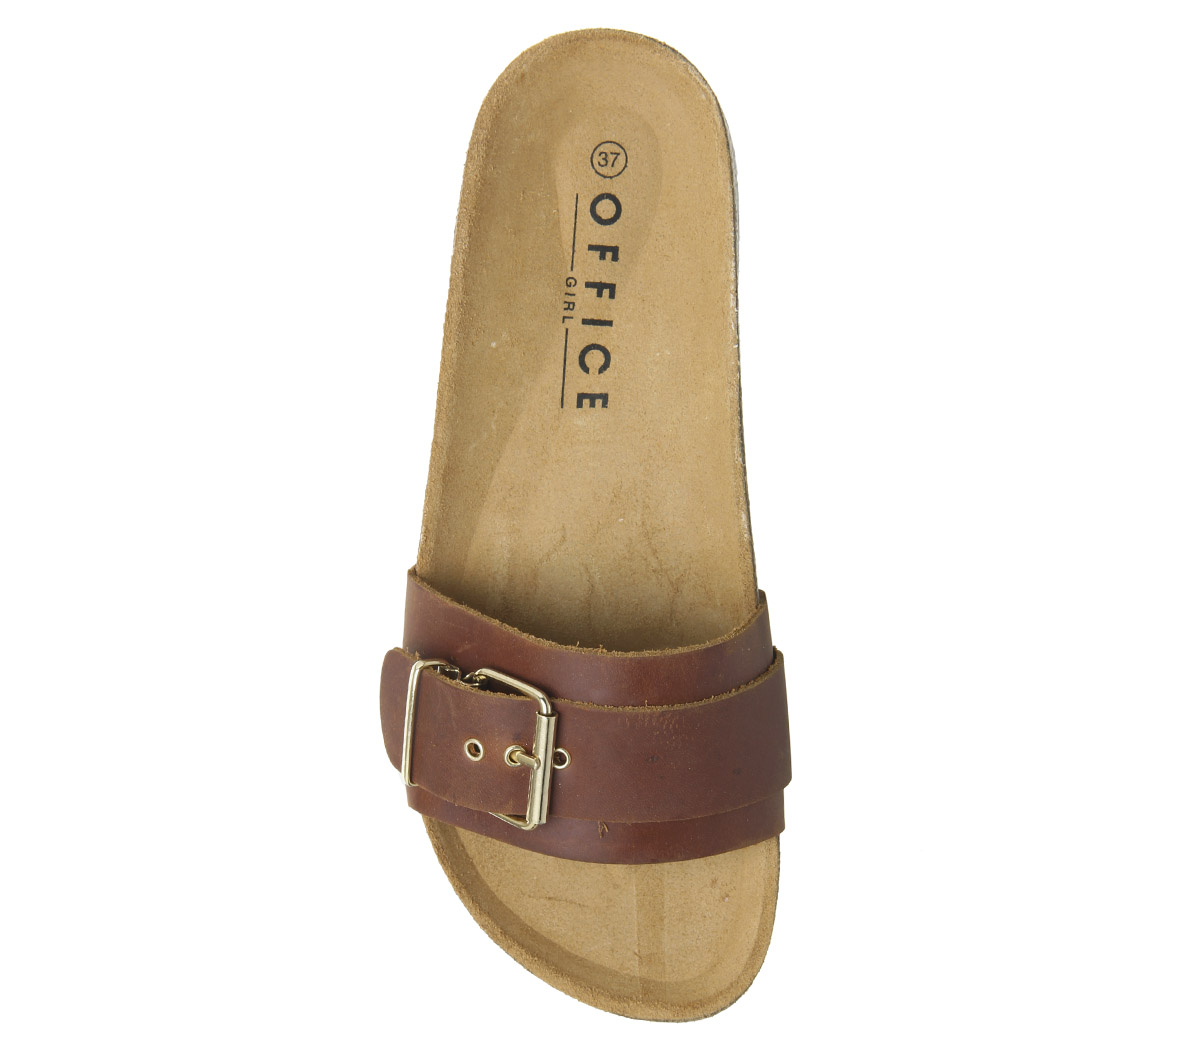 Womens-Office-Stereo-Buckle-Footbed-Sandals-Tan-Leather-Sandals thumbnail 8